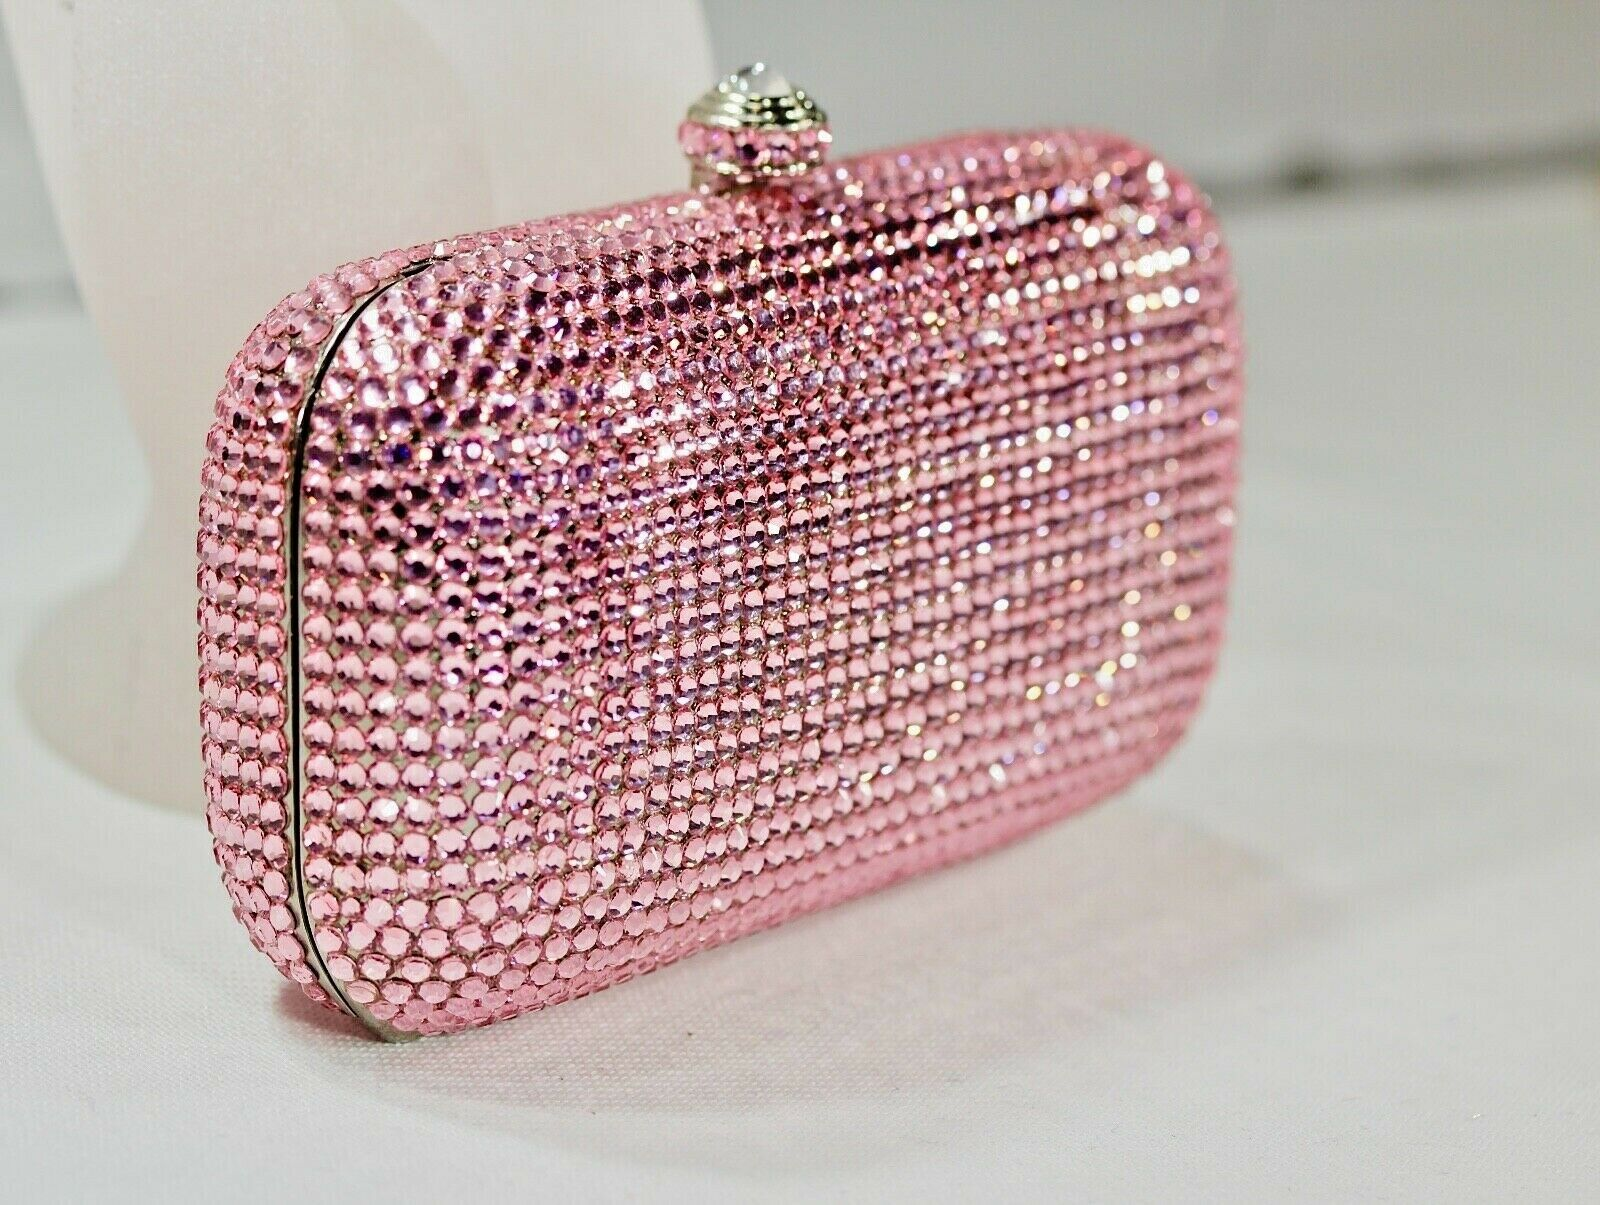 Fully Crystallized Evening Bag Clutch Small Purse Pink with Swarovski Crystals